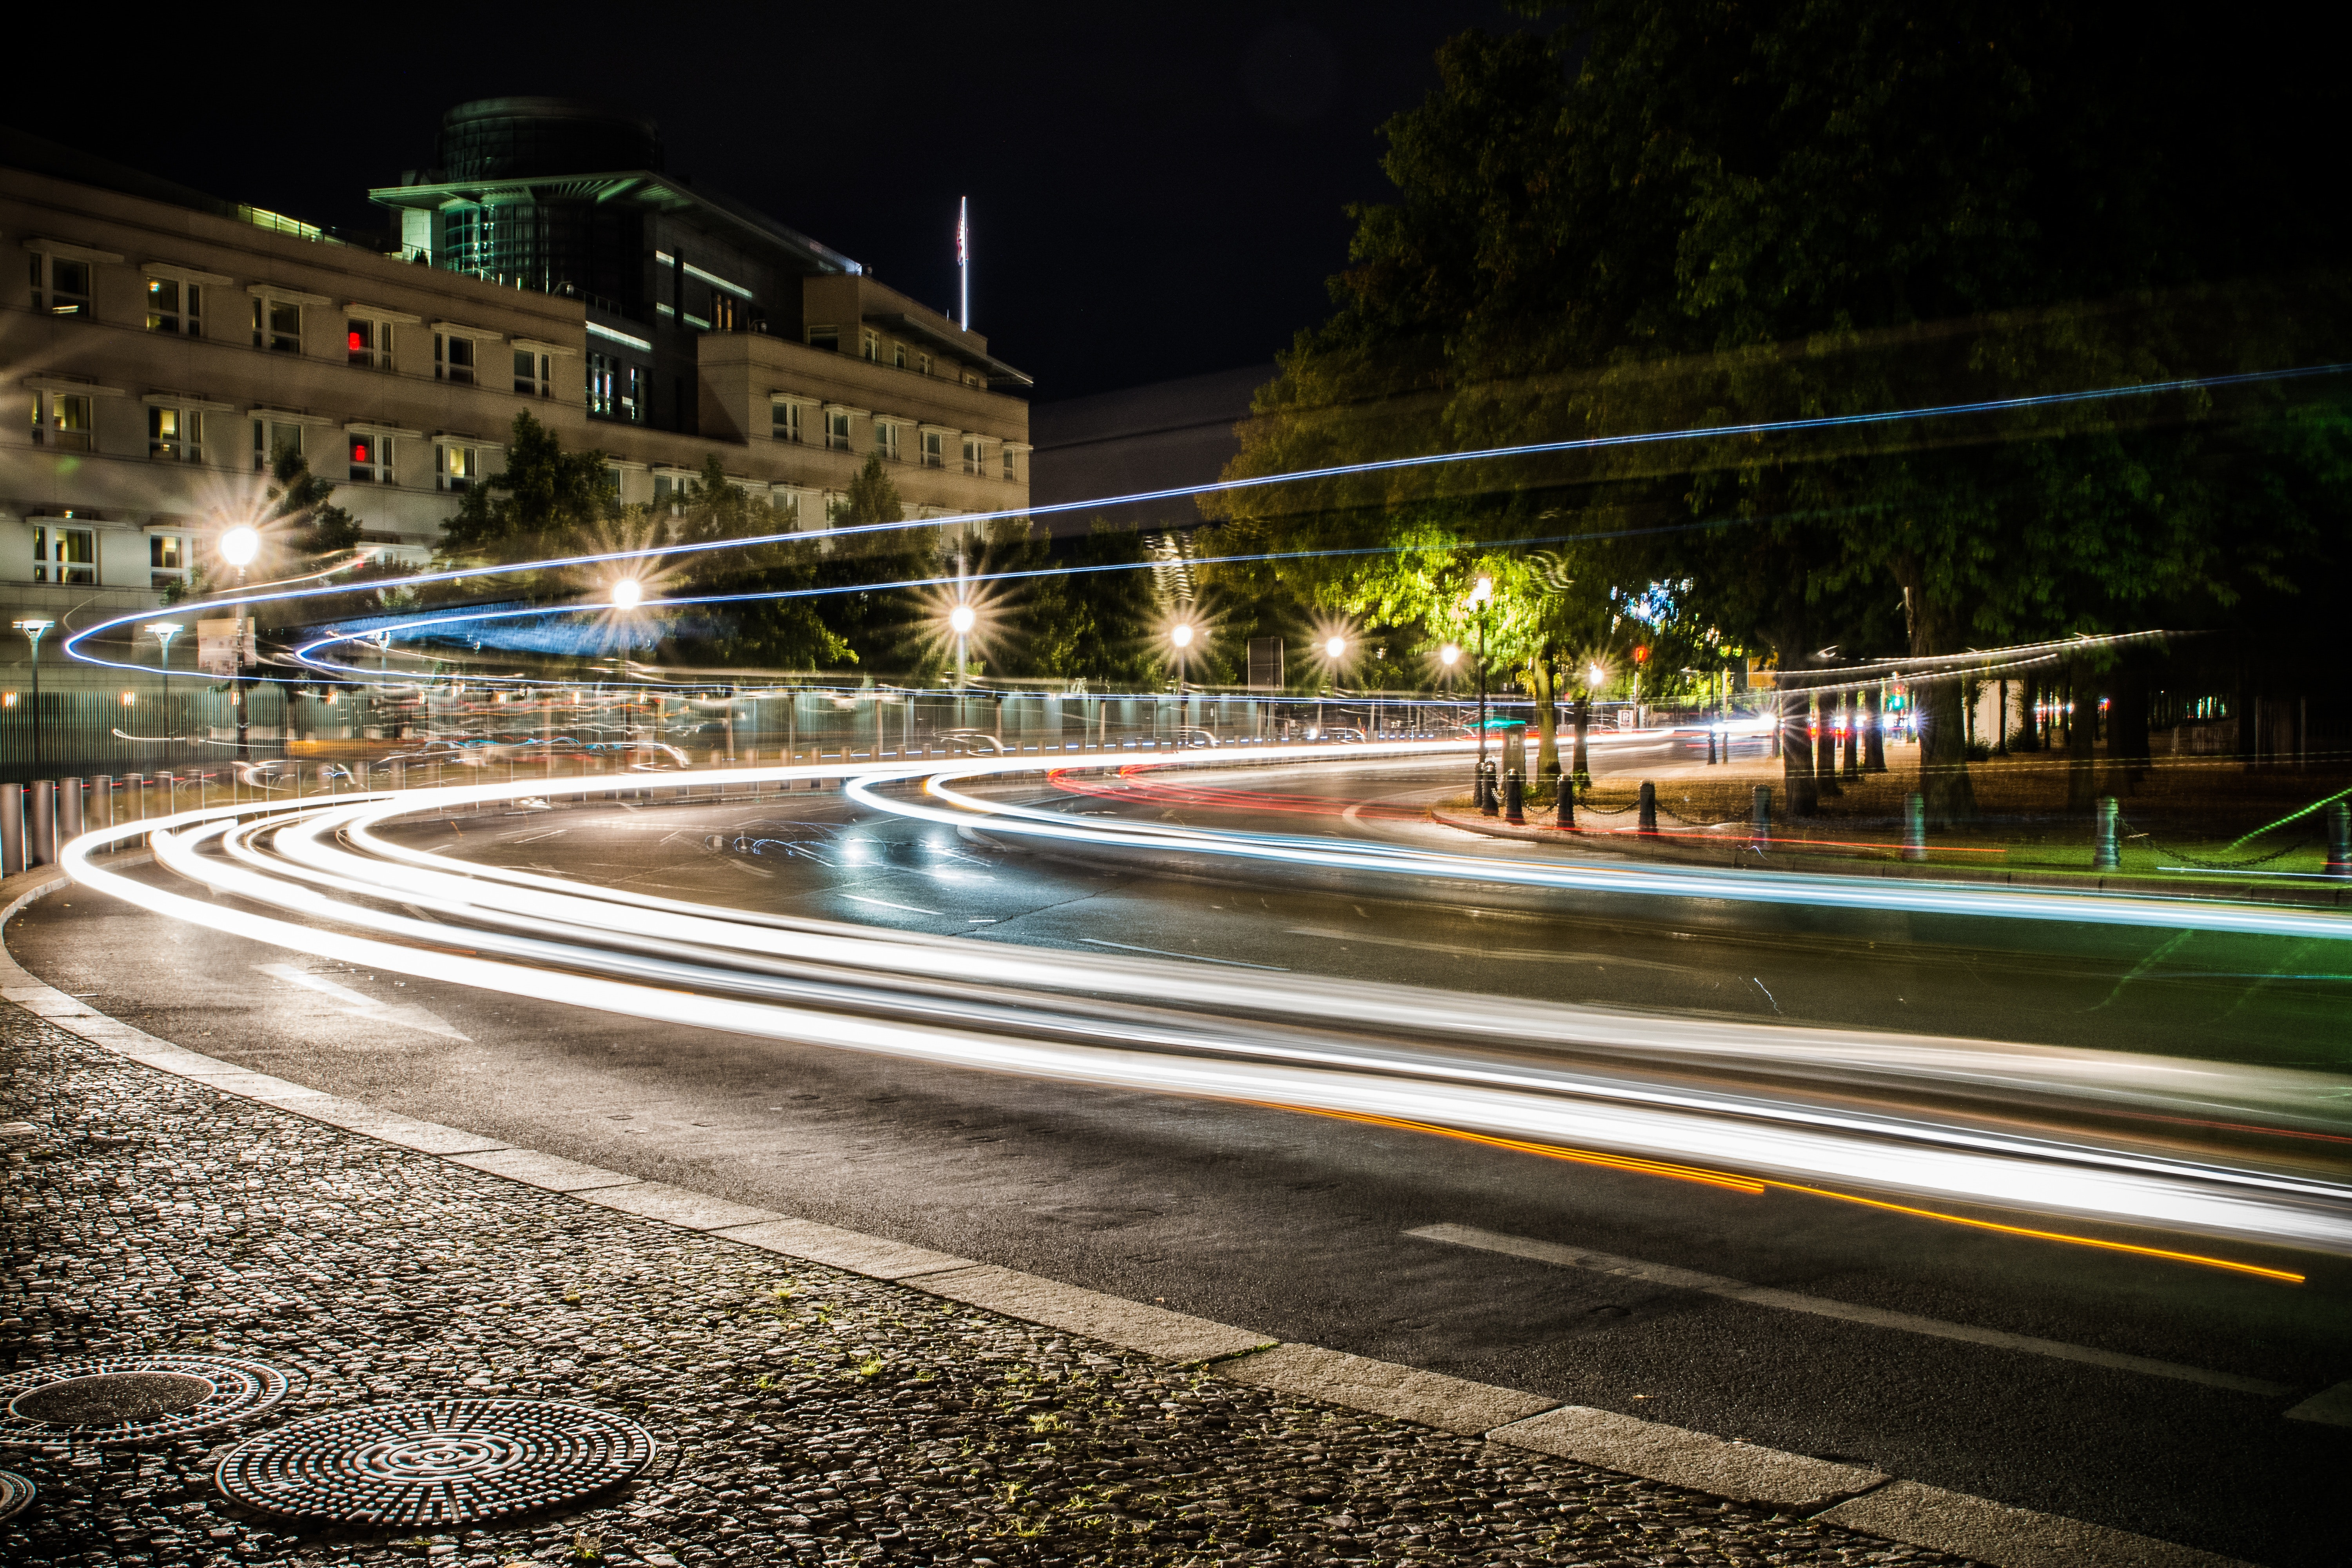 gray concrete road during night time 183 free stock photo